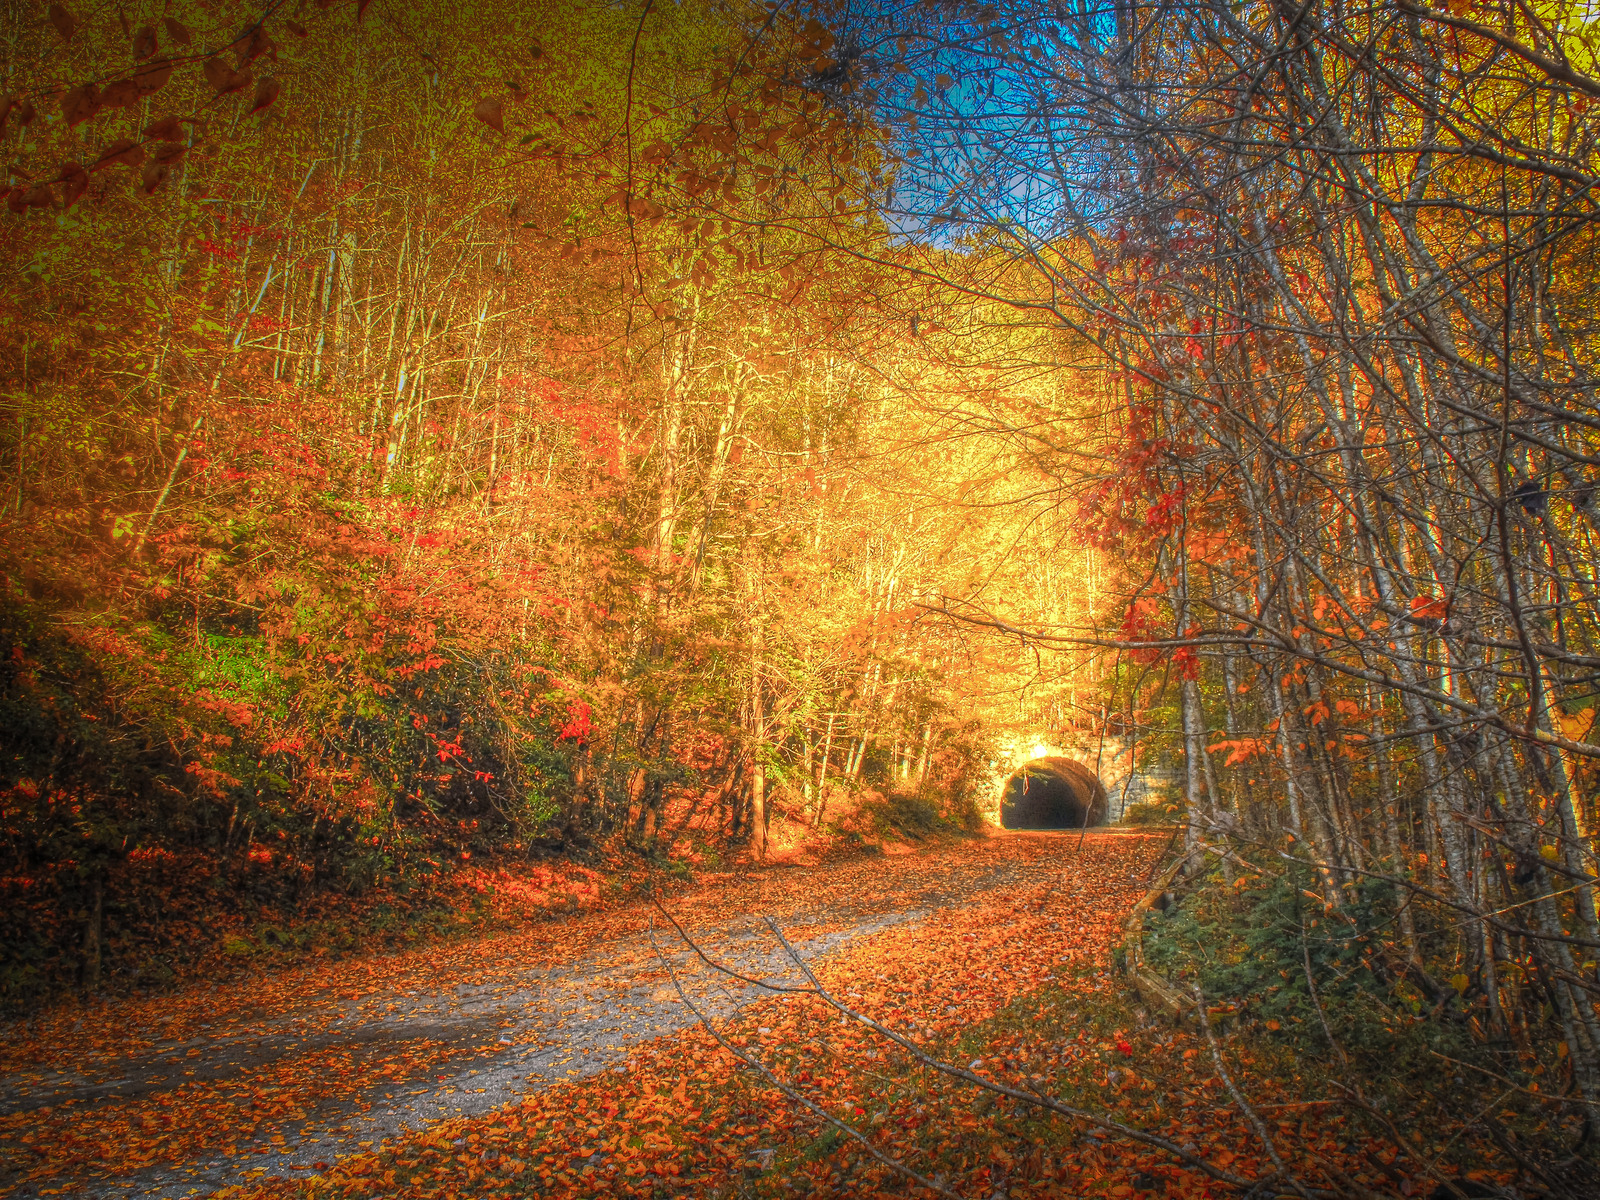 gsmnp-road-to-nowhere2.jpg